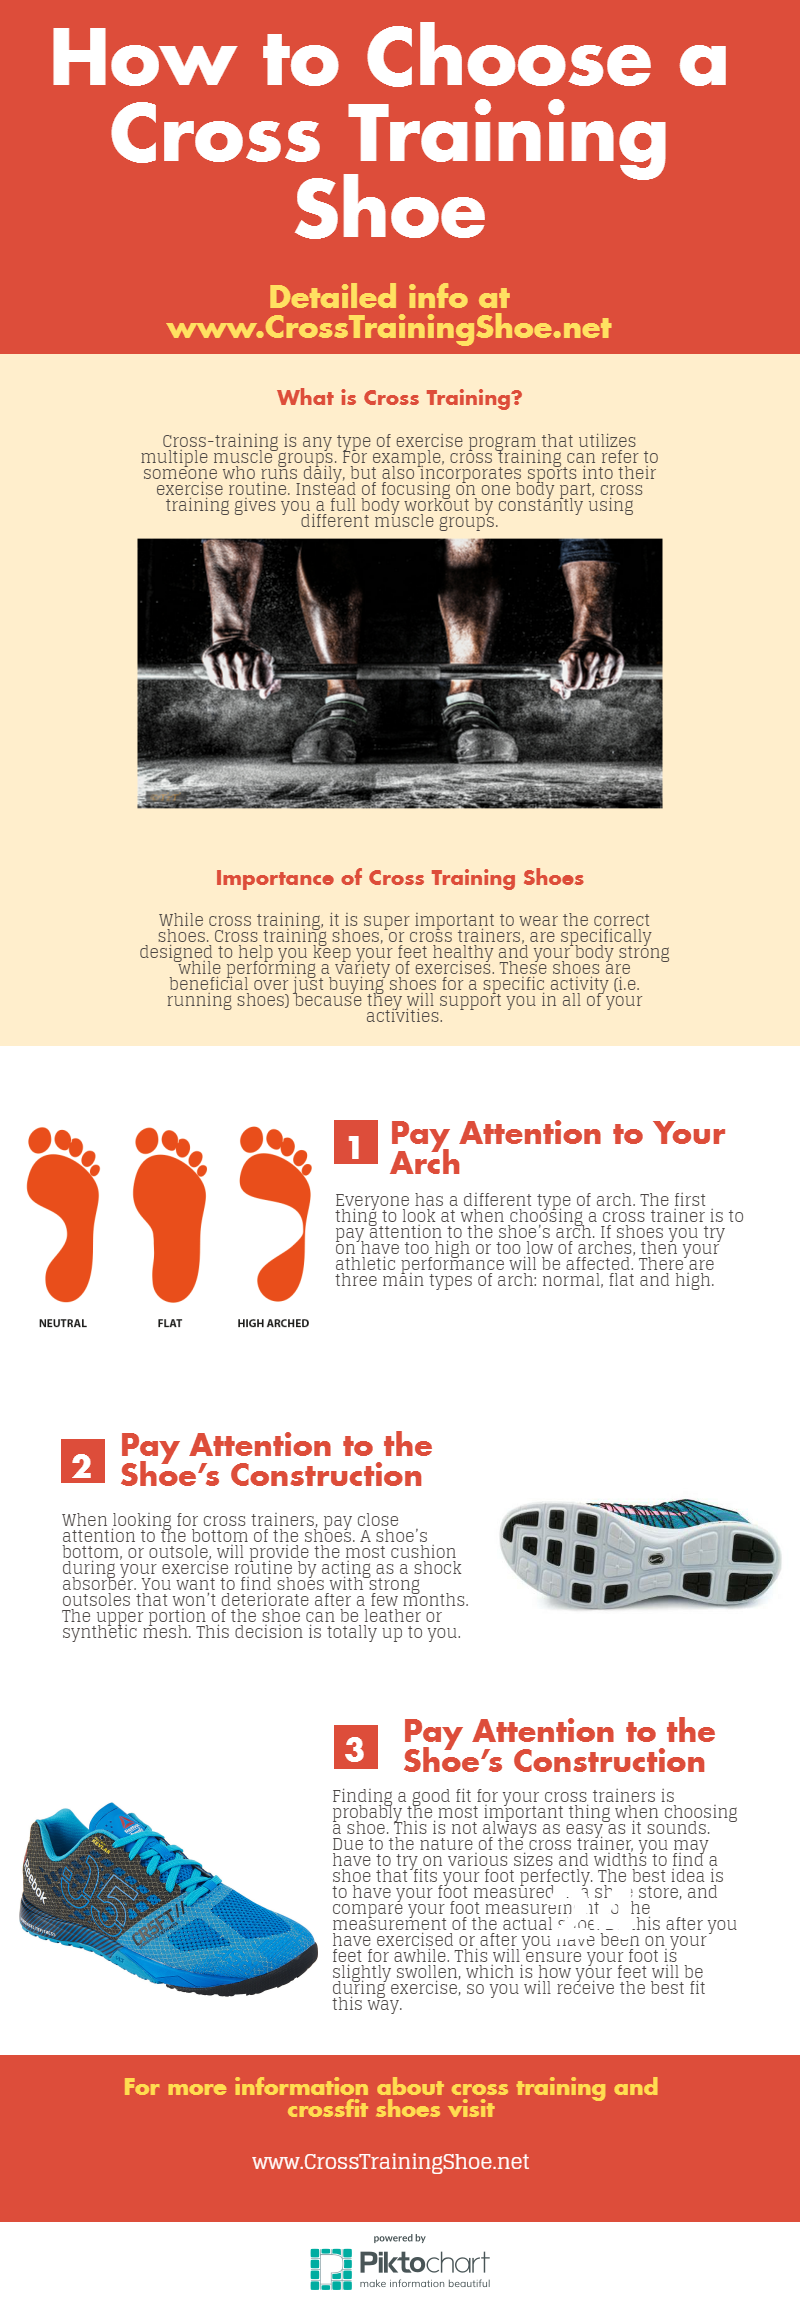 How to choose a crossfit shoe infographic